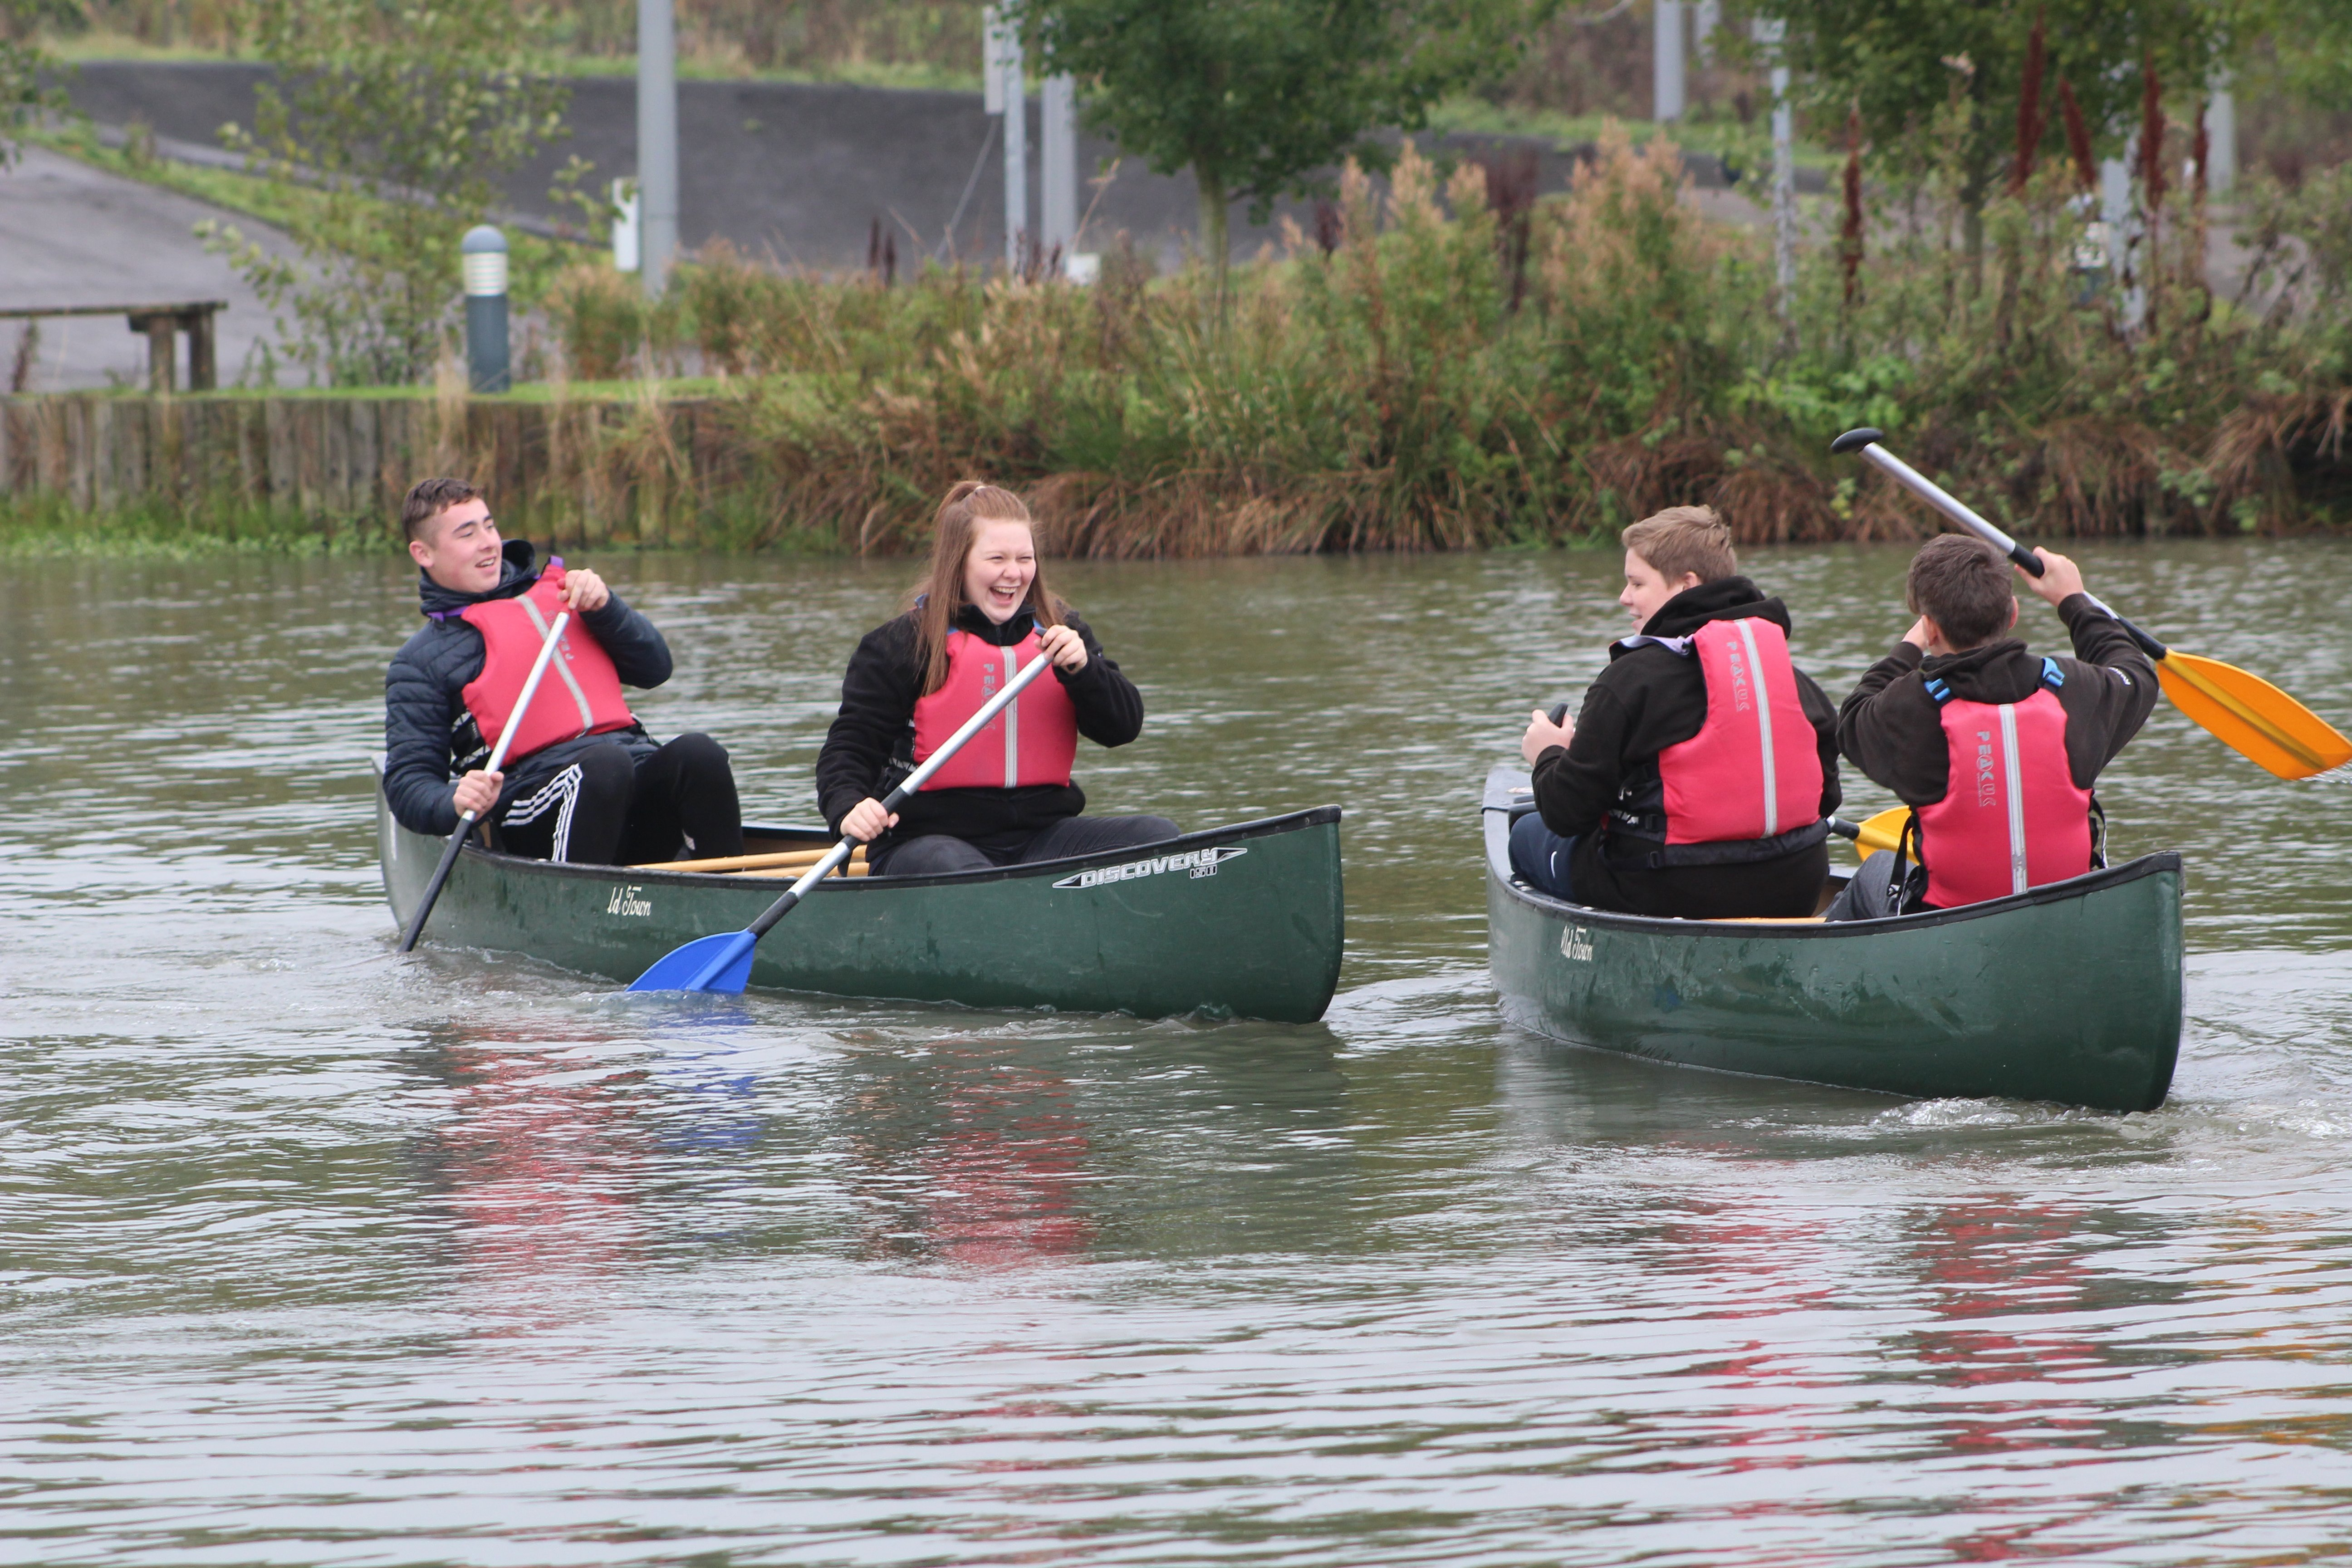 Canoeing Co Durham